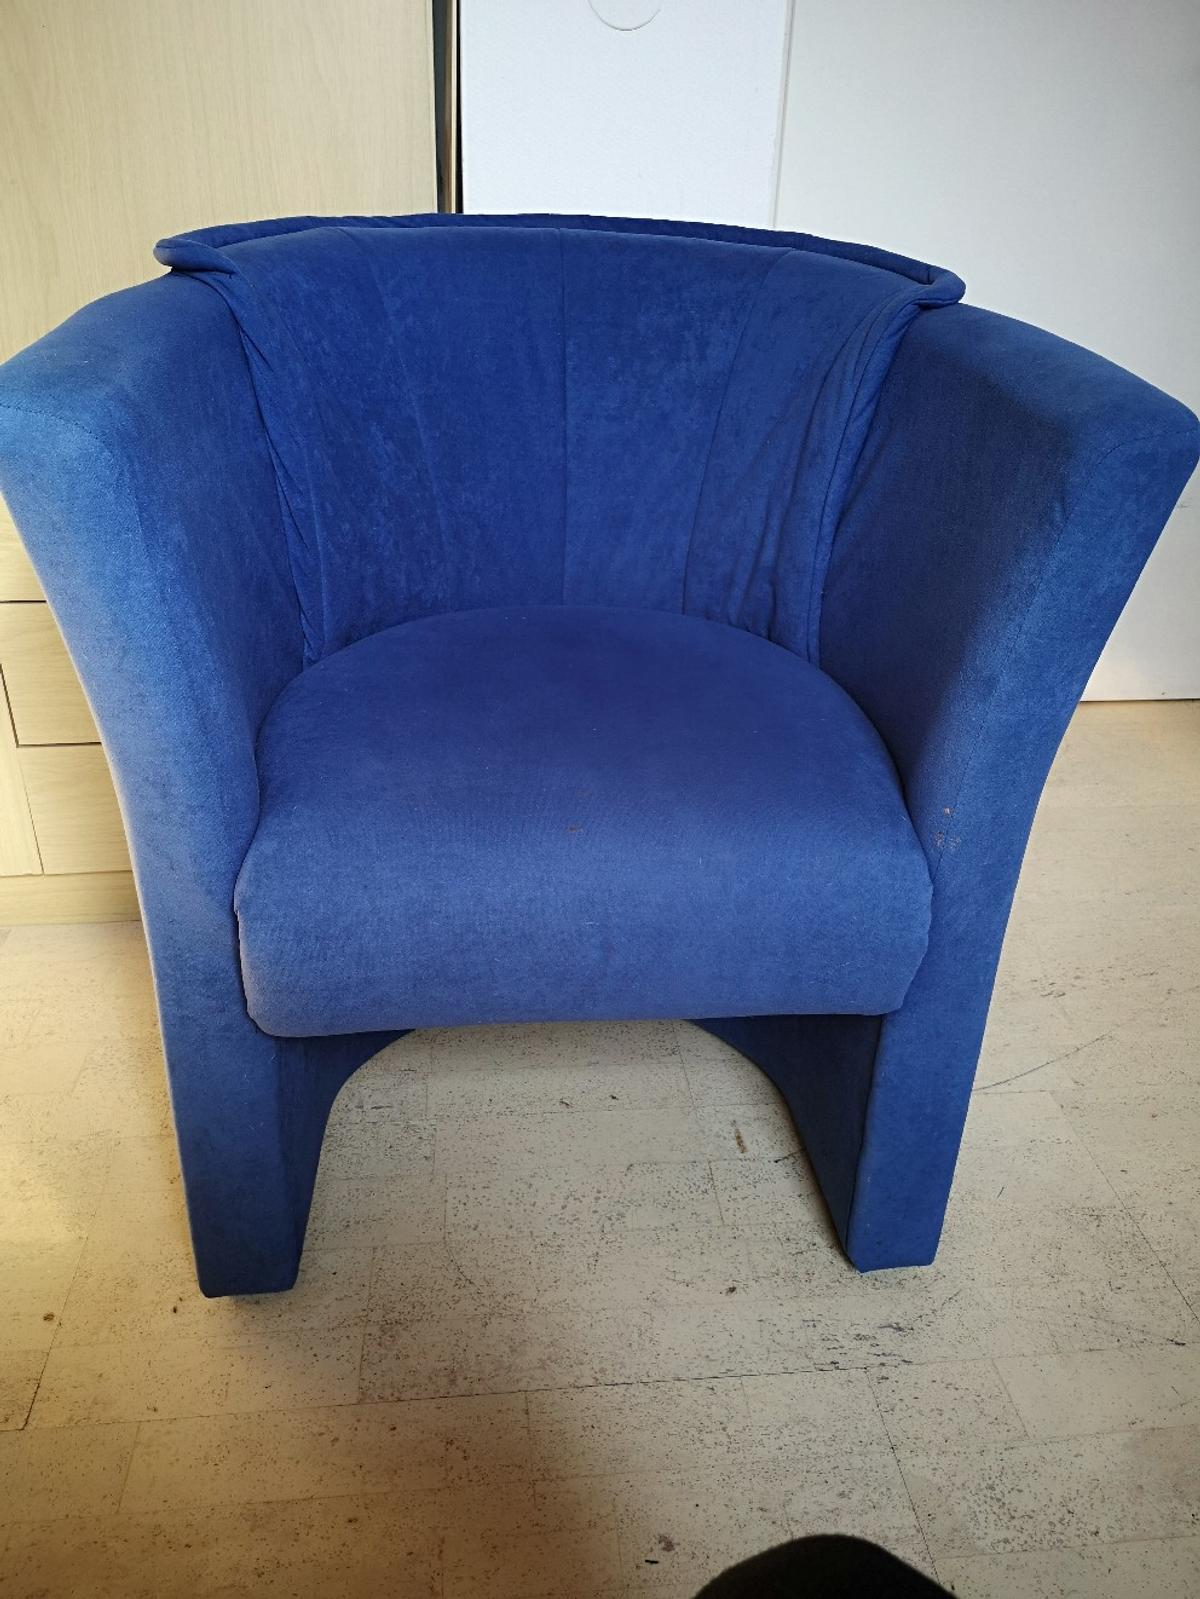 Sessel Blau Blauer Sessel - Letzte Chance In 63628 Bad Soden-salmünster For €10.00 For Sale | Shpock